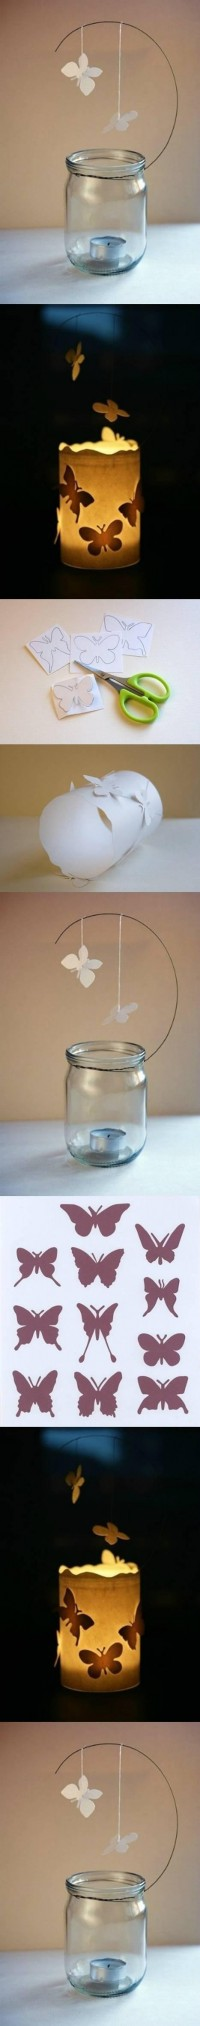 DIY Butterfly Candle Decor Ideas DIY Projects | UsefulDIY.com